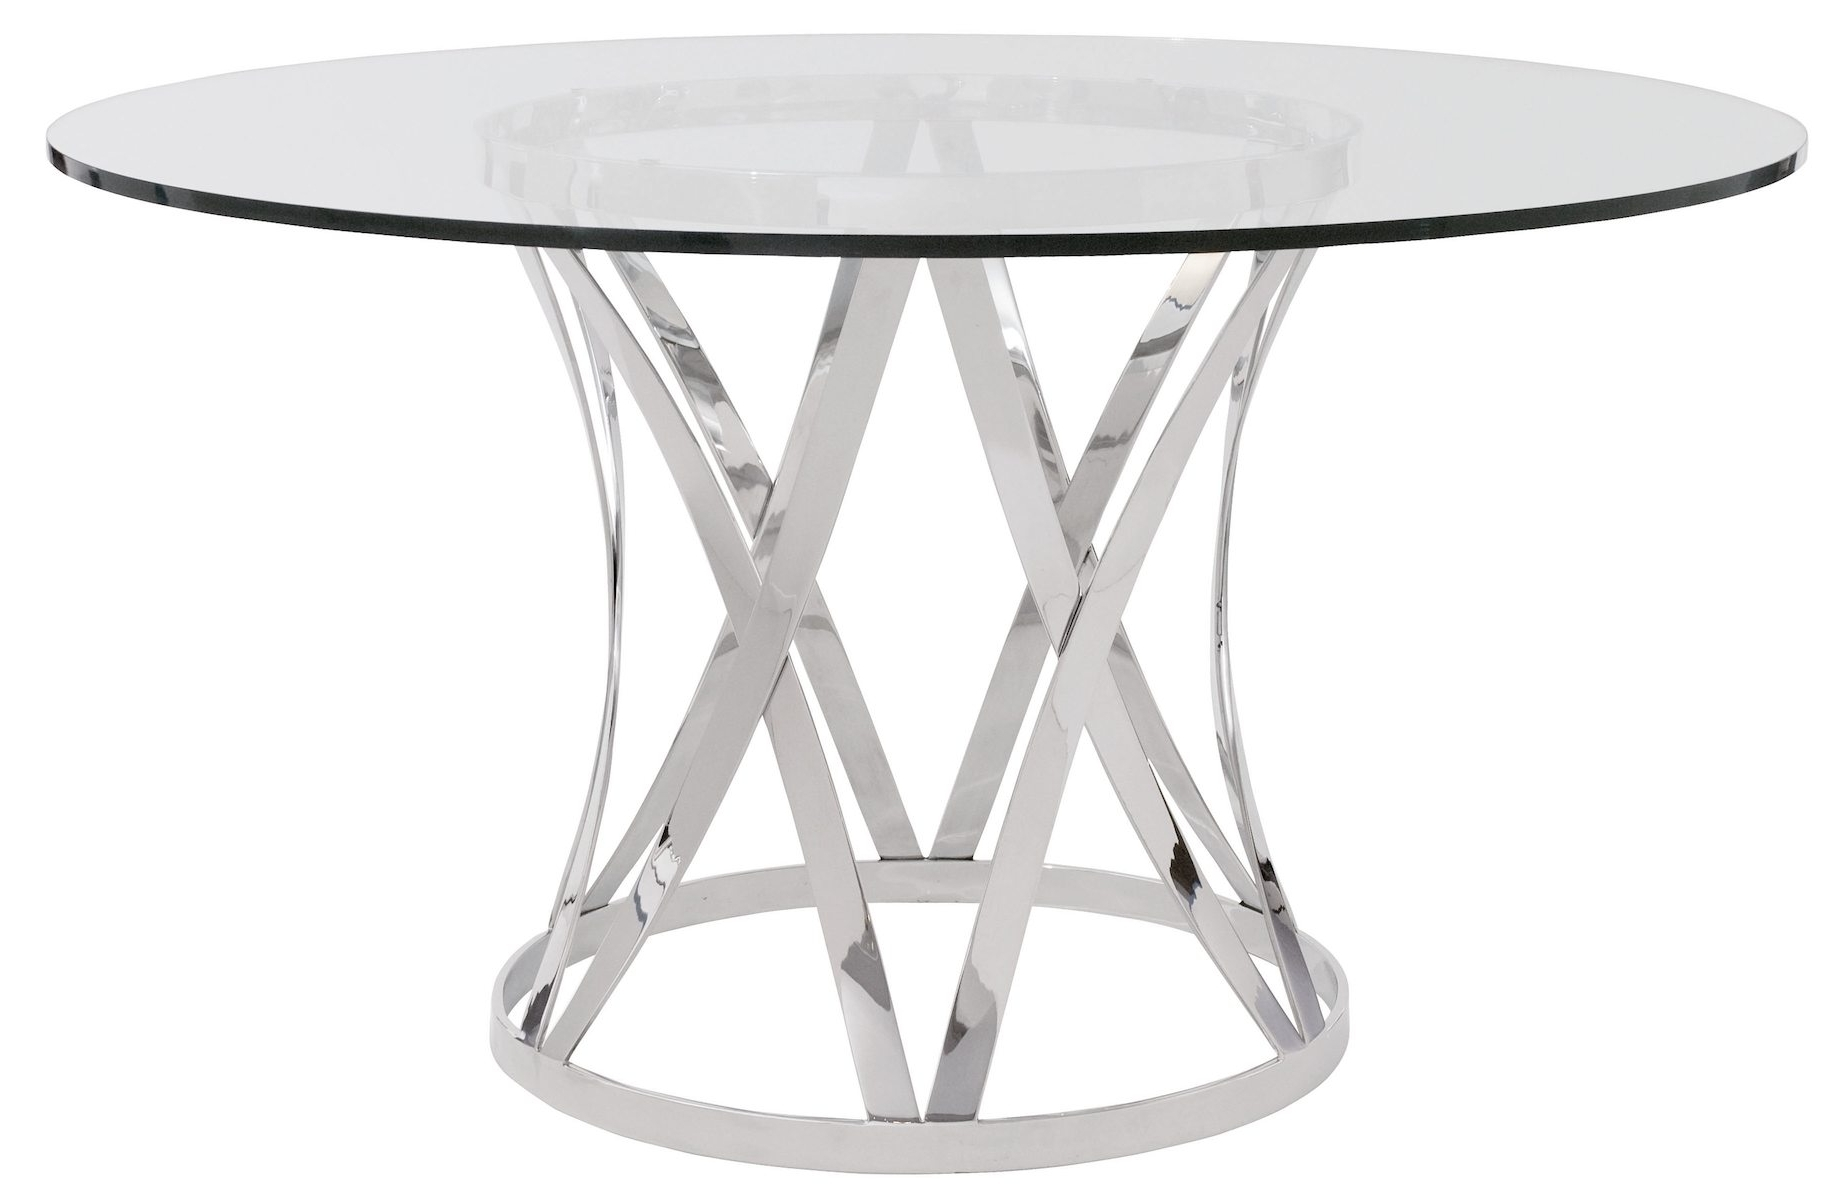 2018 Chrome Glass Dining Tables Pertaining To Awesome Round Eased Edge Profile Glass Dining Table With Polished (View 2 of 25)